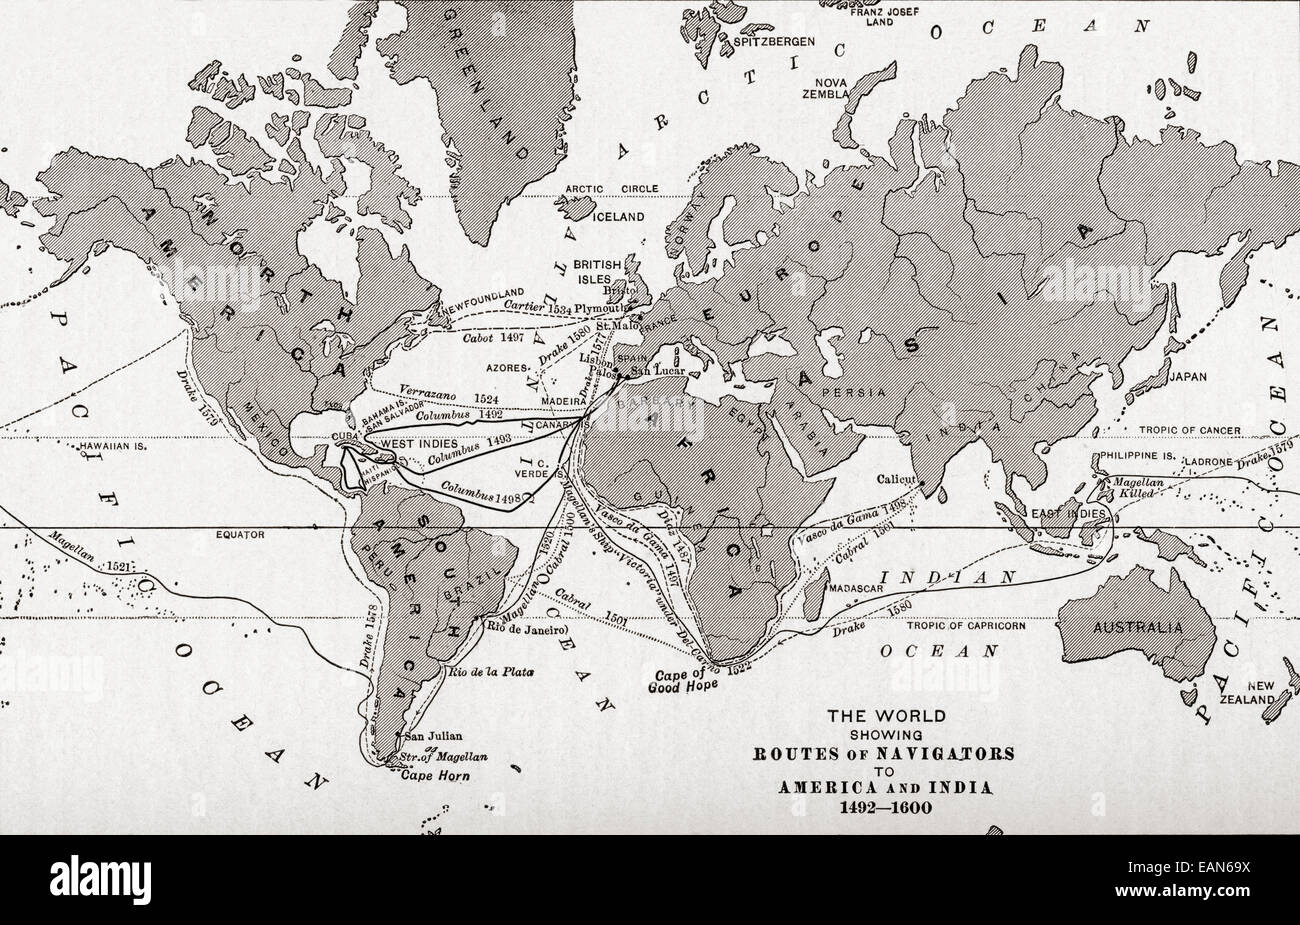 Map Of The World Showing The Routes Of Navigators To America And Stock Photo Alamy